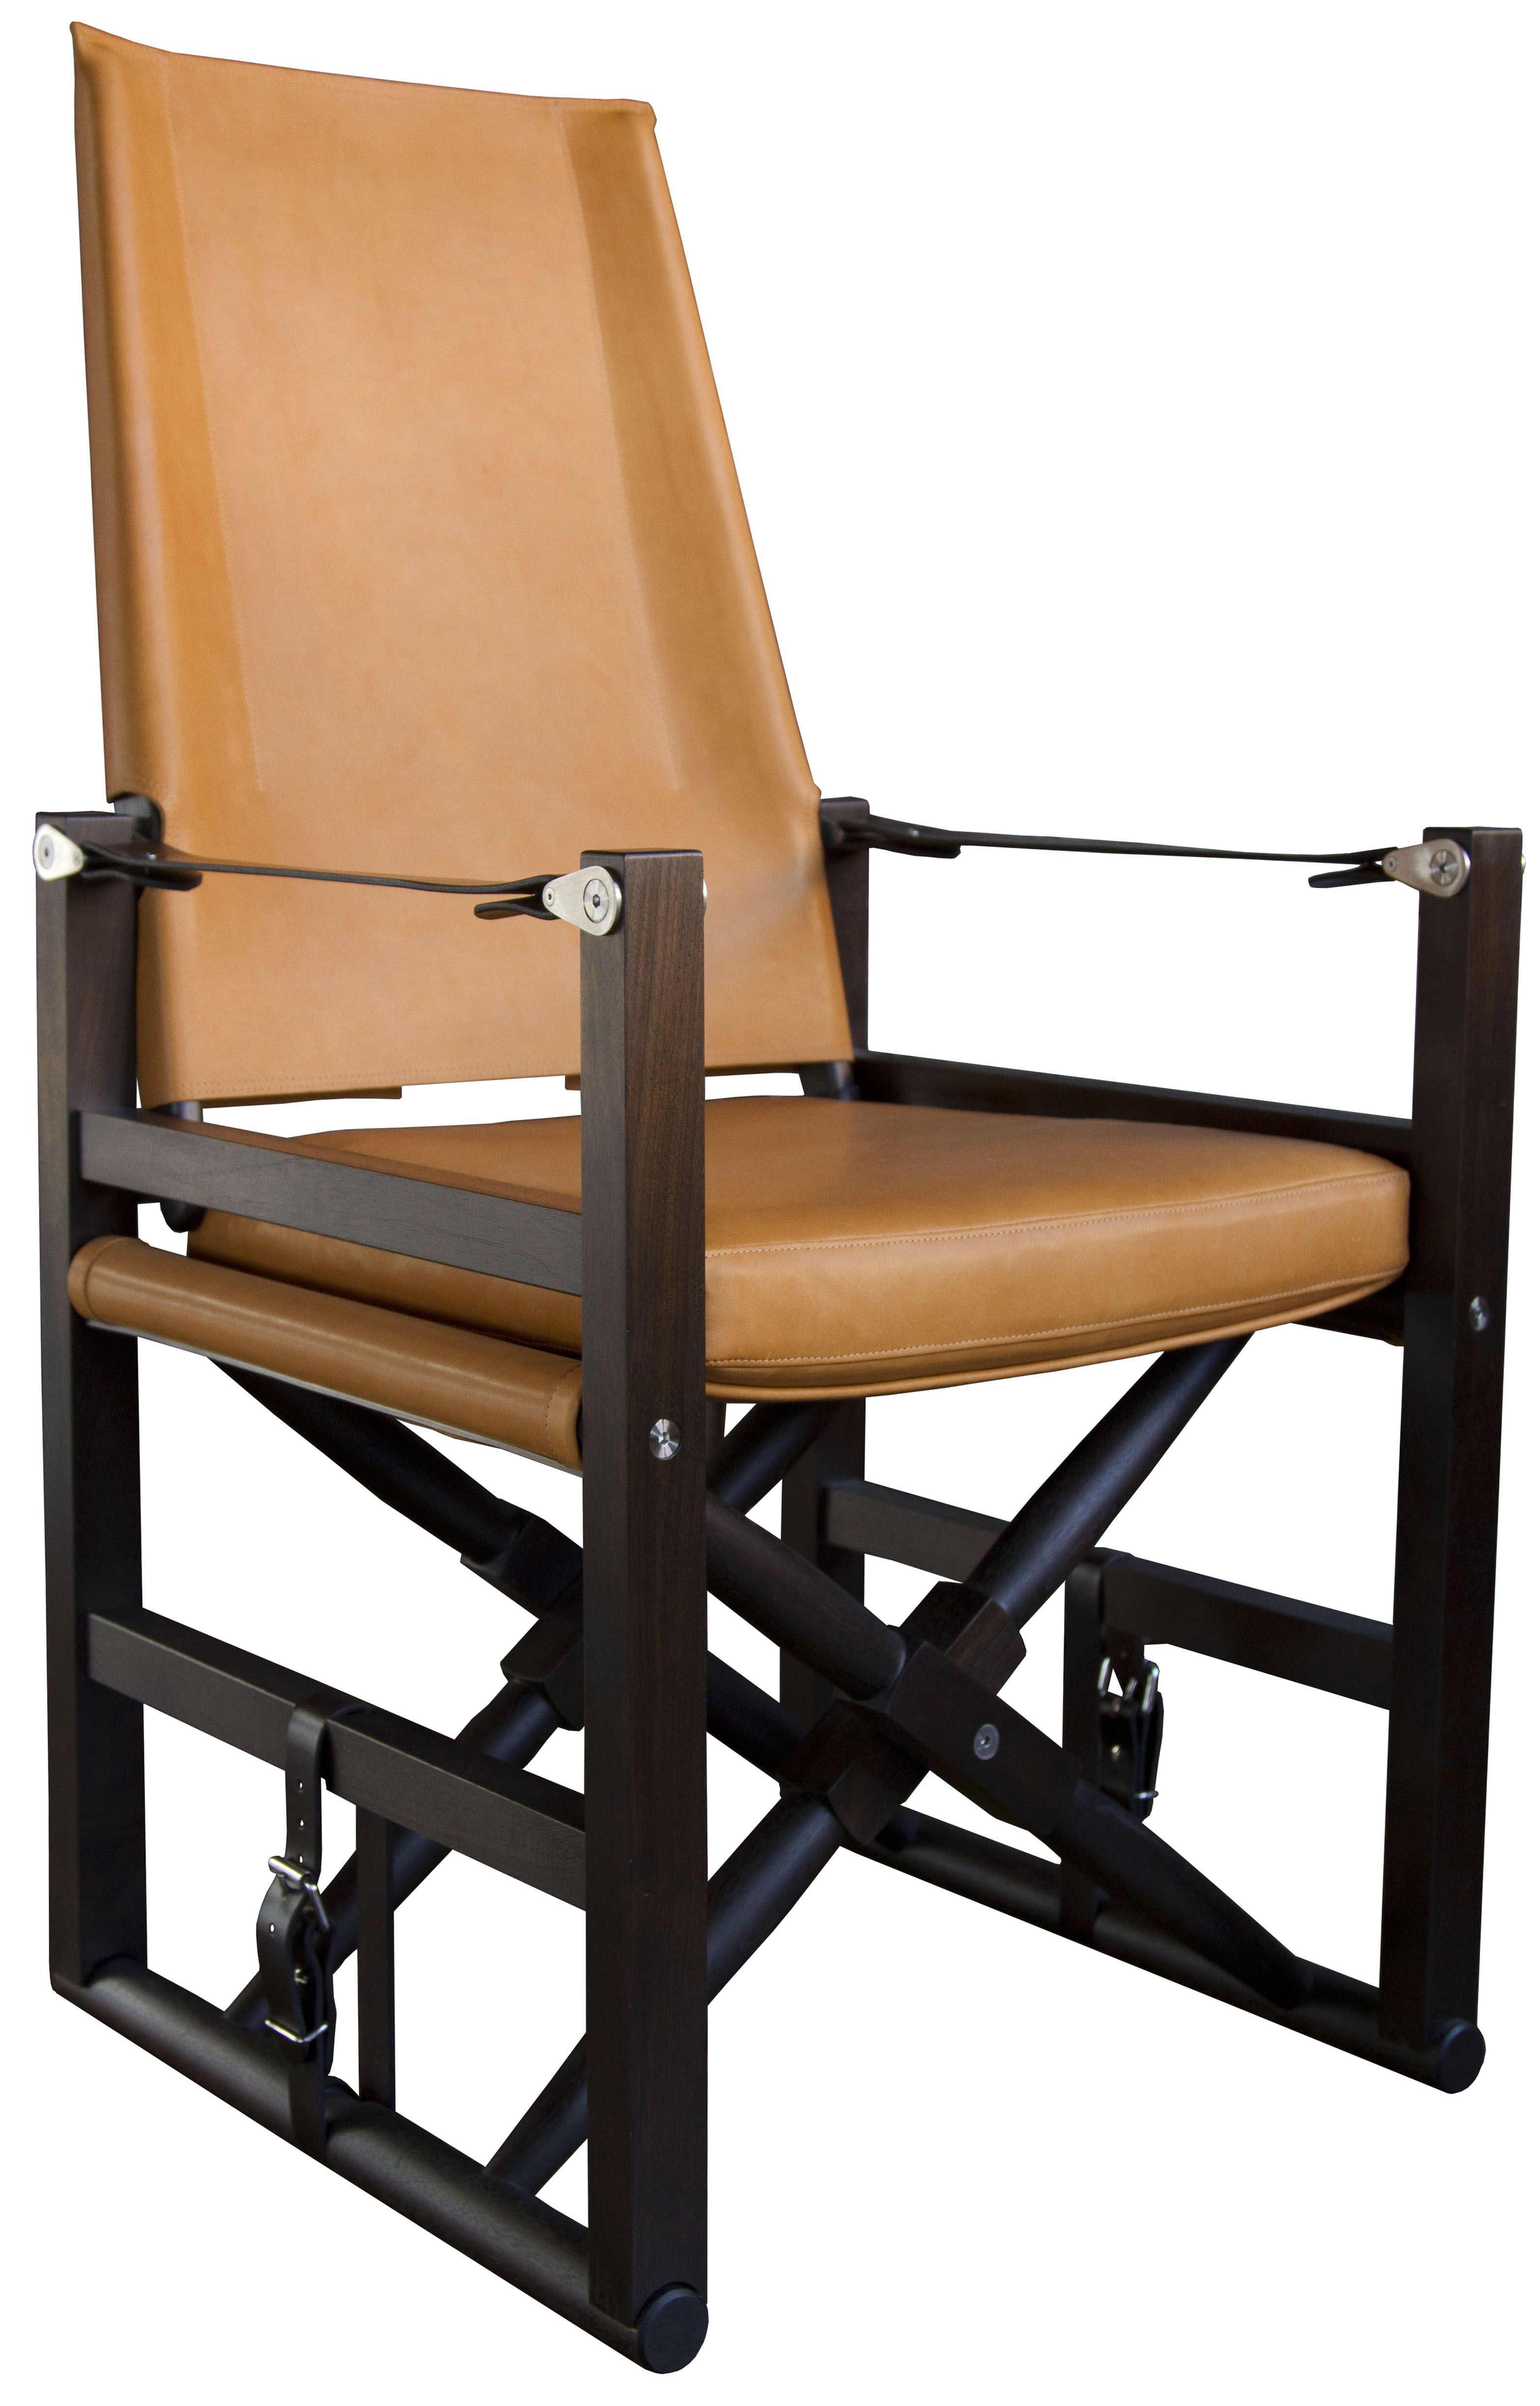 Superb High Back Cabourn Folding Chair In Leather Products In Ibusinesslaw Wood Chair Design Ideas Ibusinesslaworg